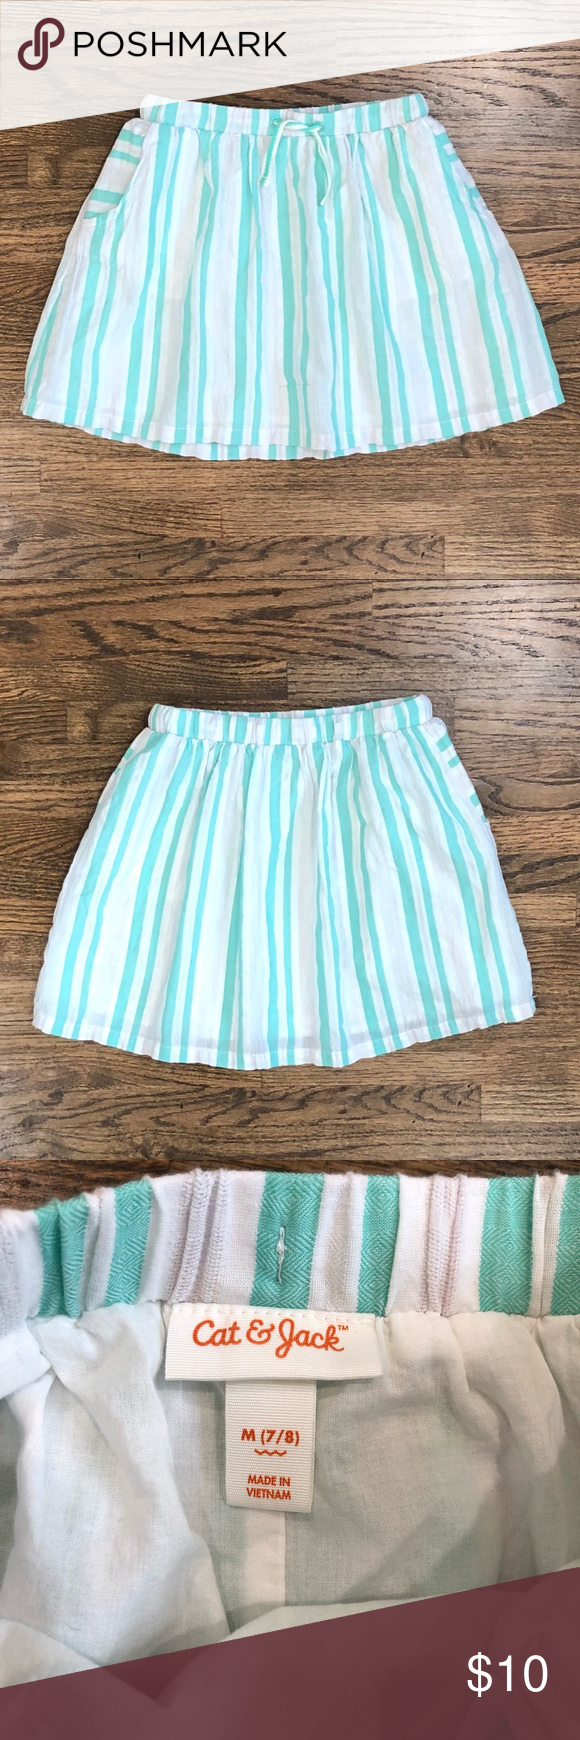 Cat & Jack Mint & White Twirl Skirt This is the sweetest skirt for spring! The colors are great and it has a full cut plus a lining. Best of all, it has pockets! It looks like it is new.  #catandjack #green #twirl #circleskirt #skater Cat & Jack Bottoms Skirts #twirlskirt Cat & Jack Mint & White Twirl Skirt This is the sweetest skirt for spring! The colors are great and it has a full cut plus a lining. Best of all, it has pockets! It looks like it is new.  #catandjack #green #twirl #circleskirt #twirlskirt